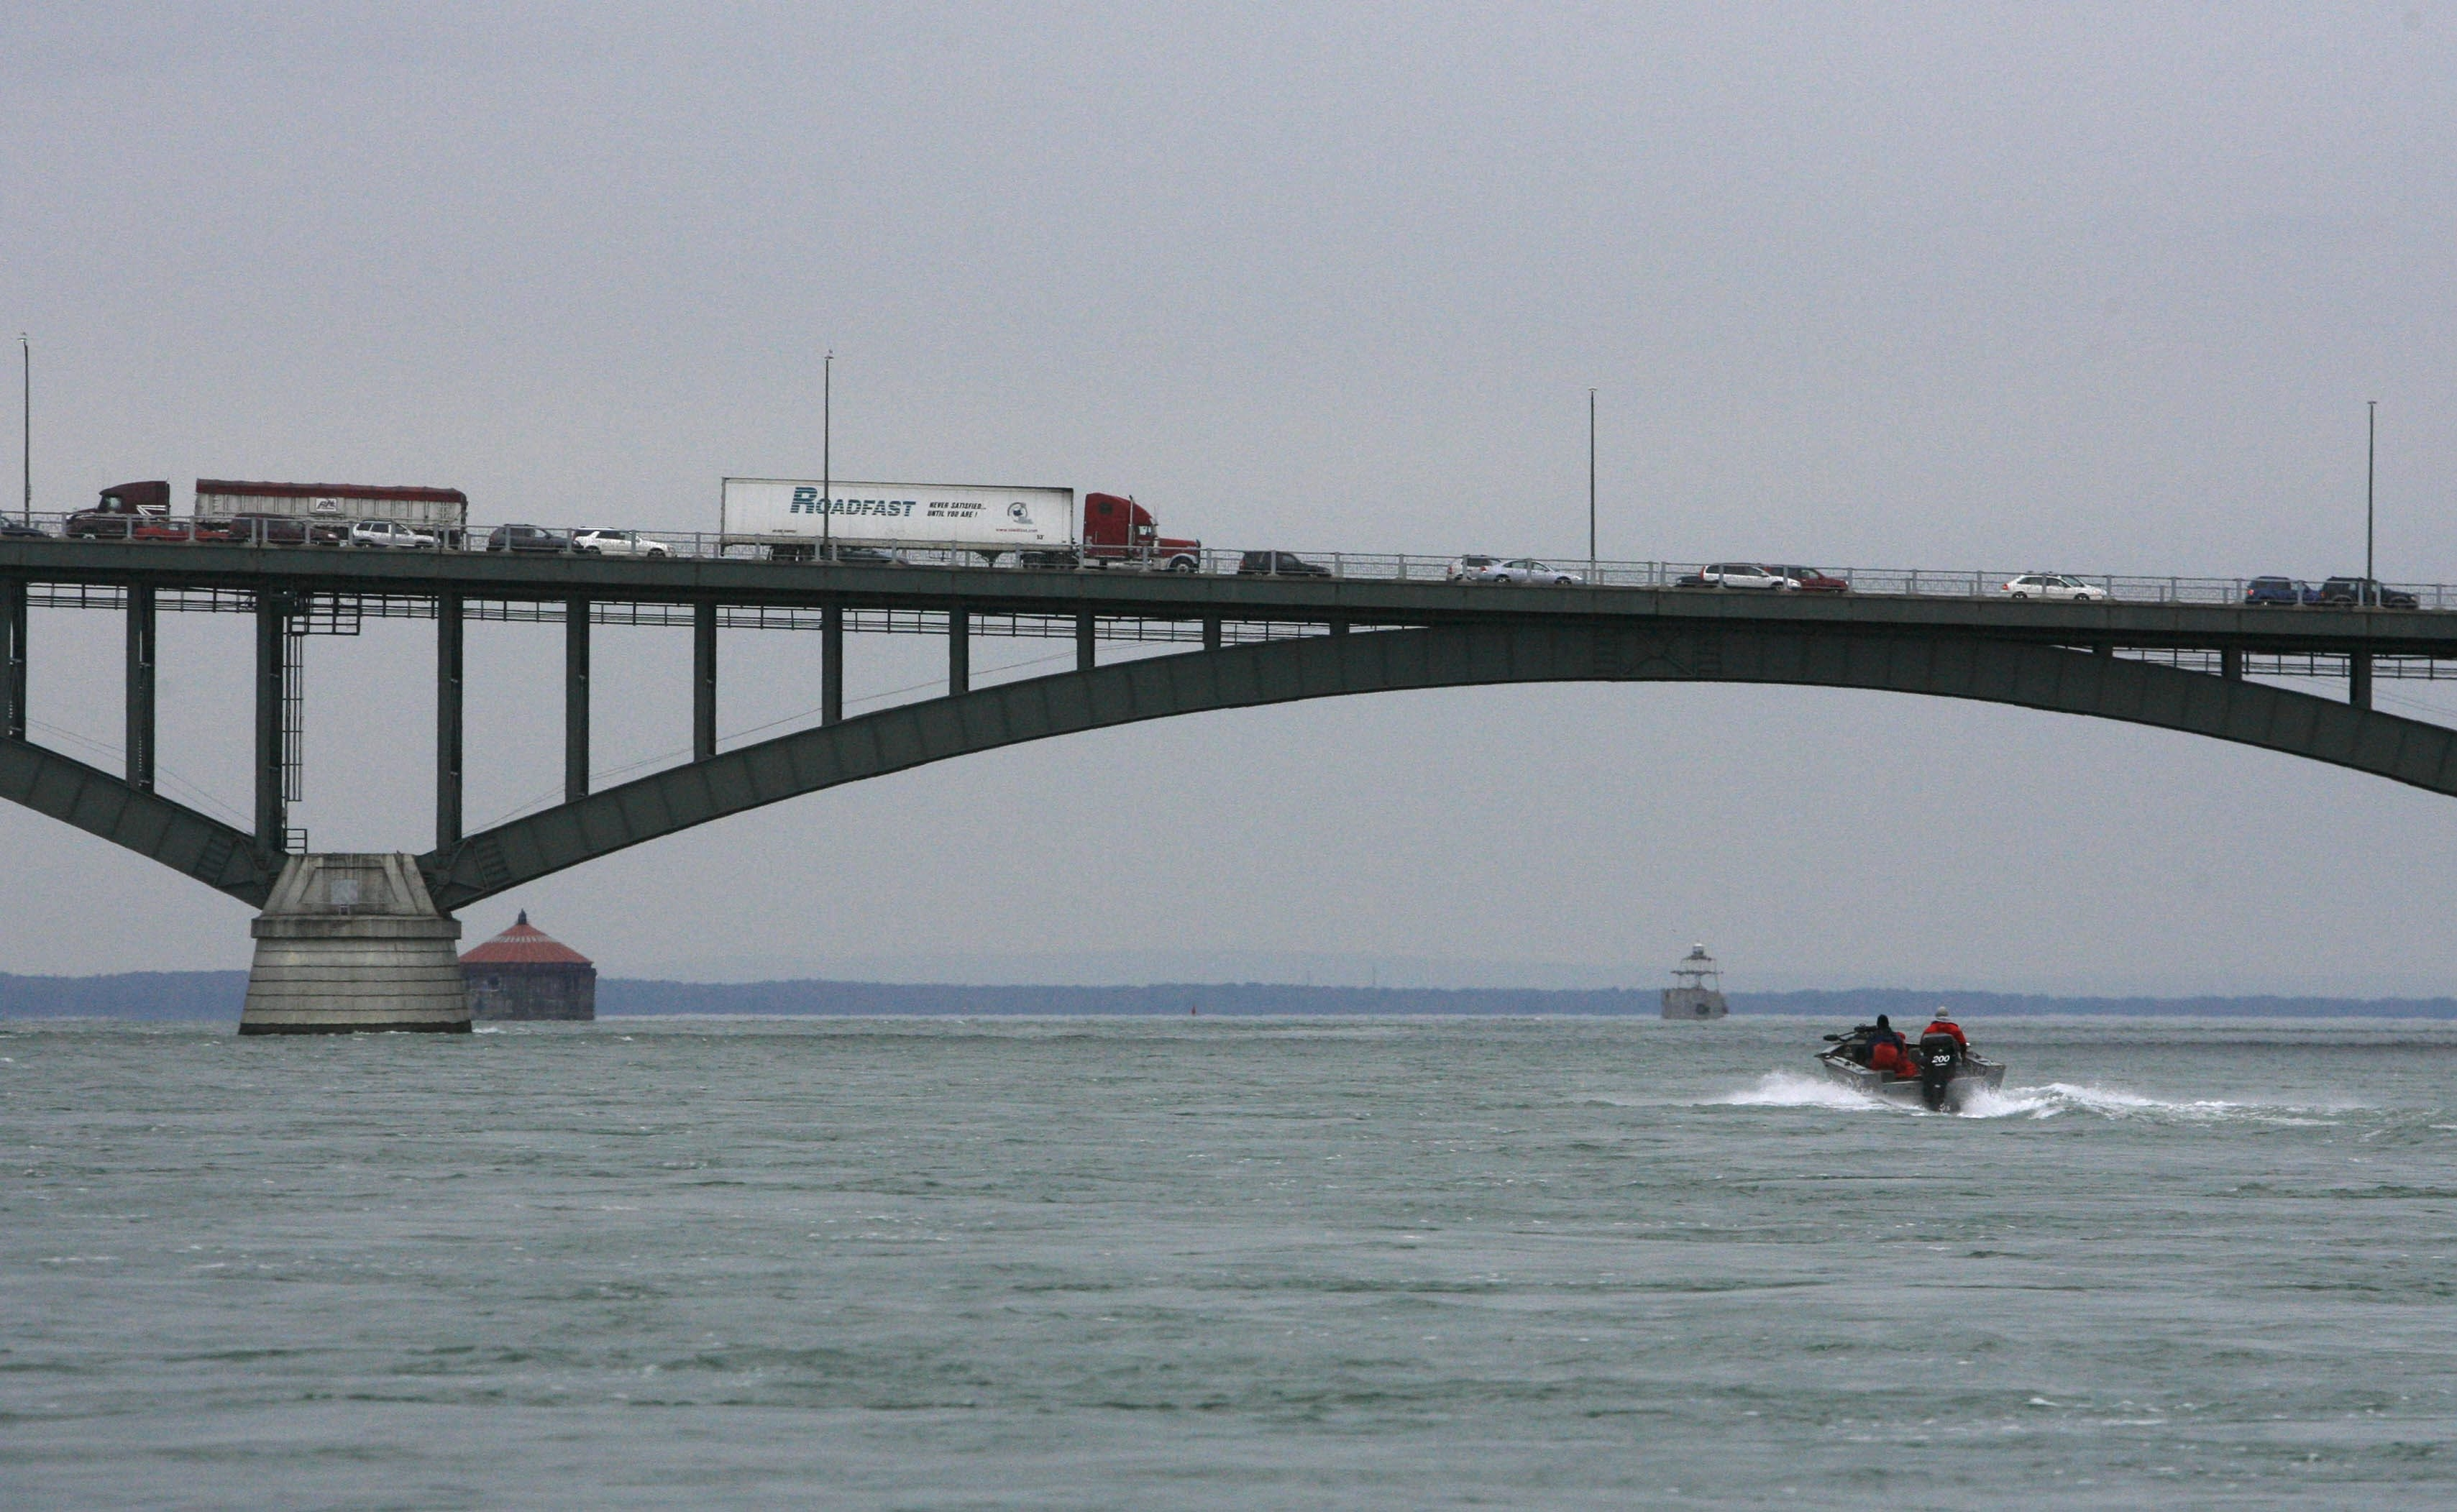 Traffic often backs up on the Peace Bridge on holidays, as it did on Oct. 12, 2009, a chilly Columbus Day and Canadian Thanksgiving.